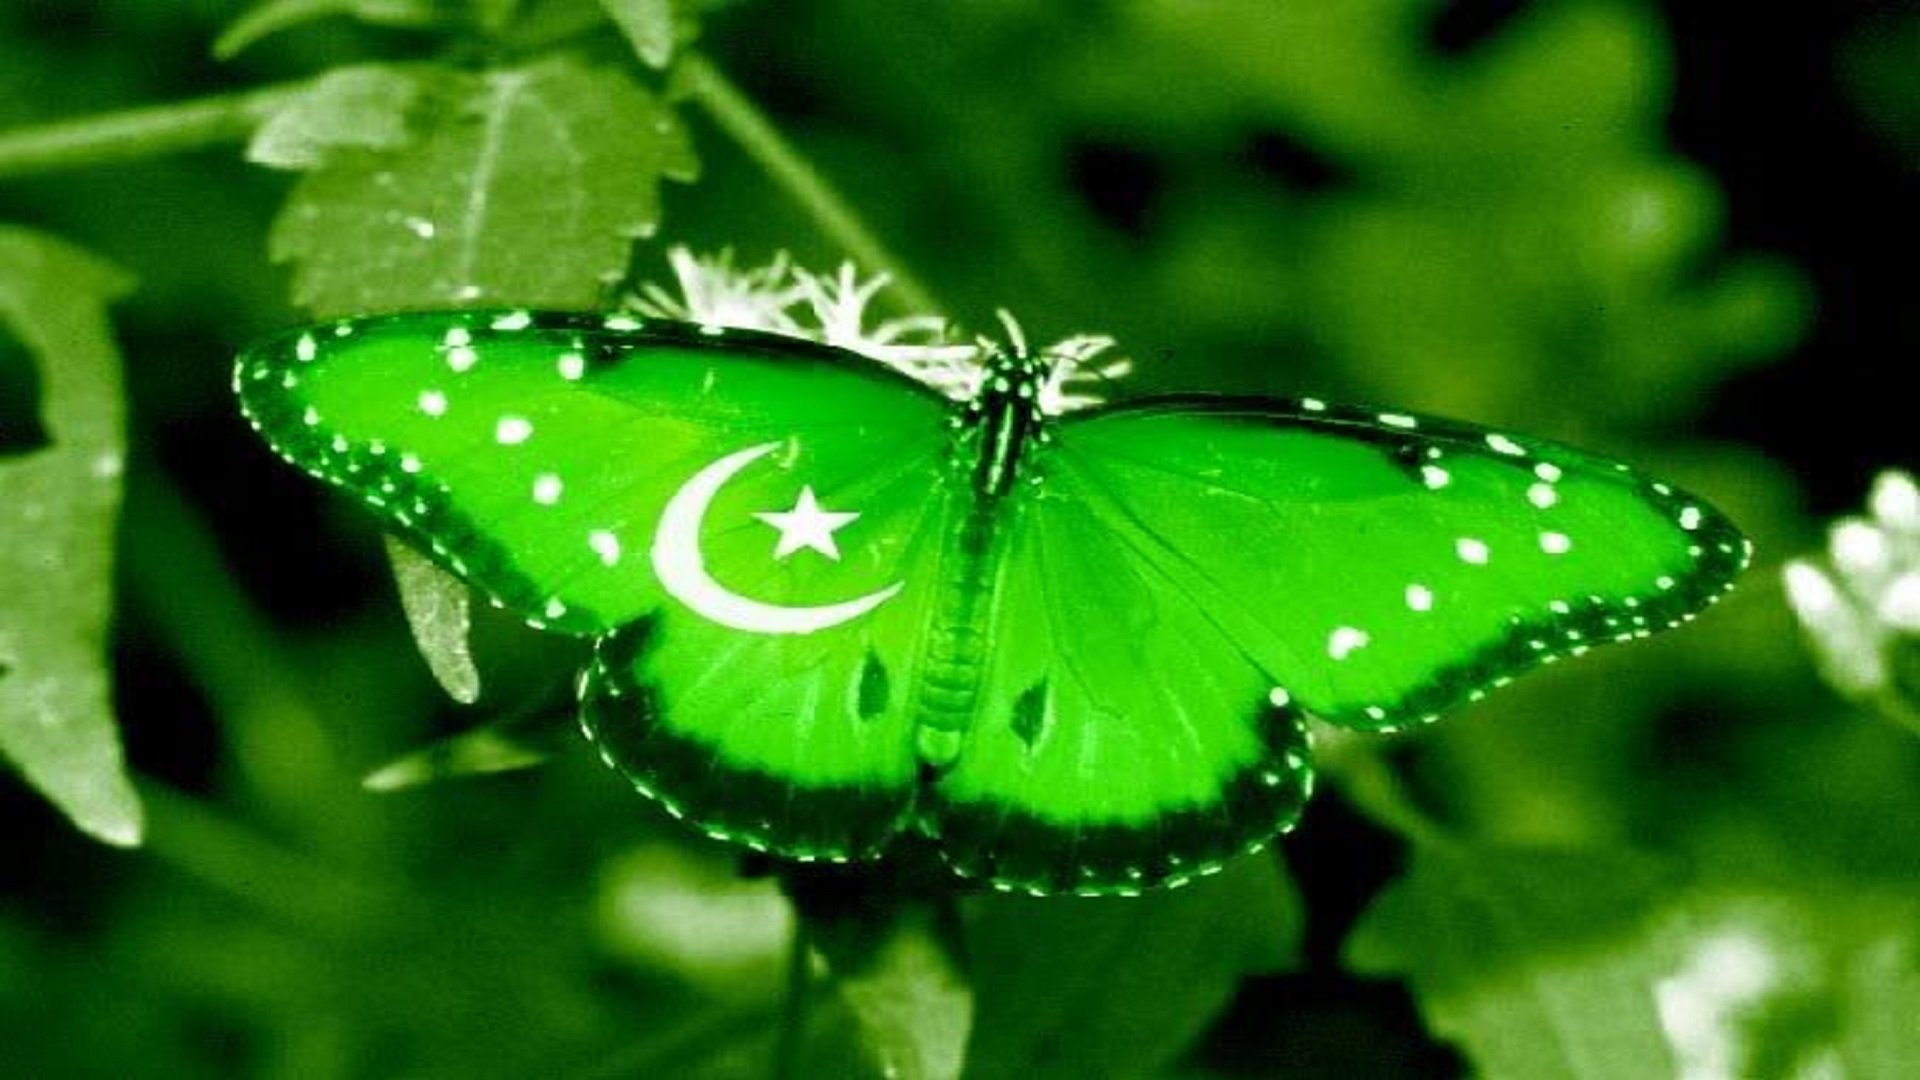 Pakistan best wallpapers hd free for you